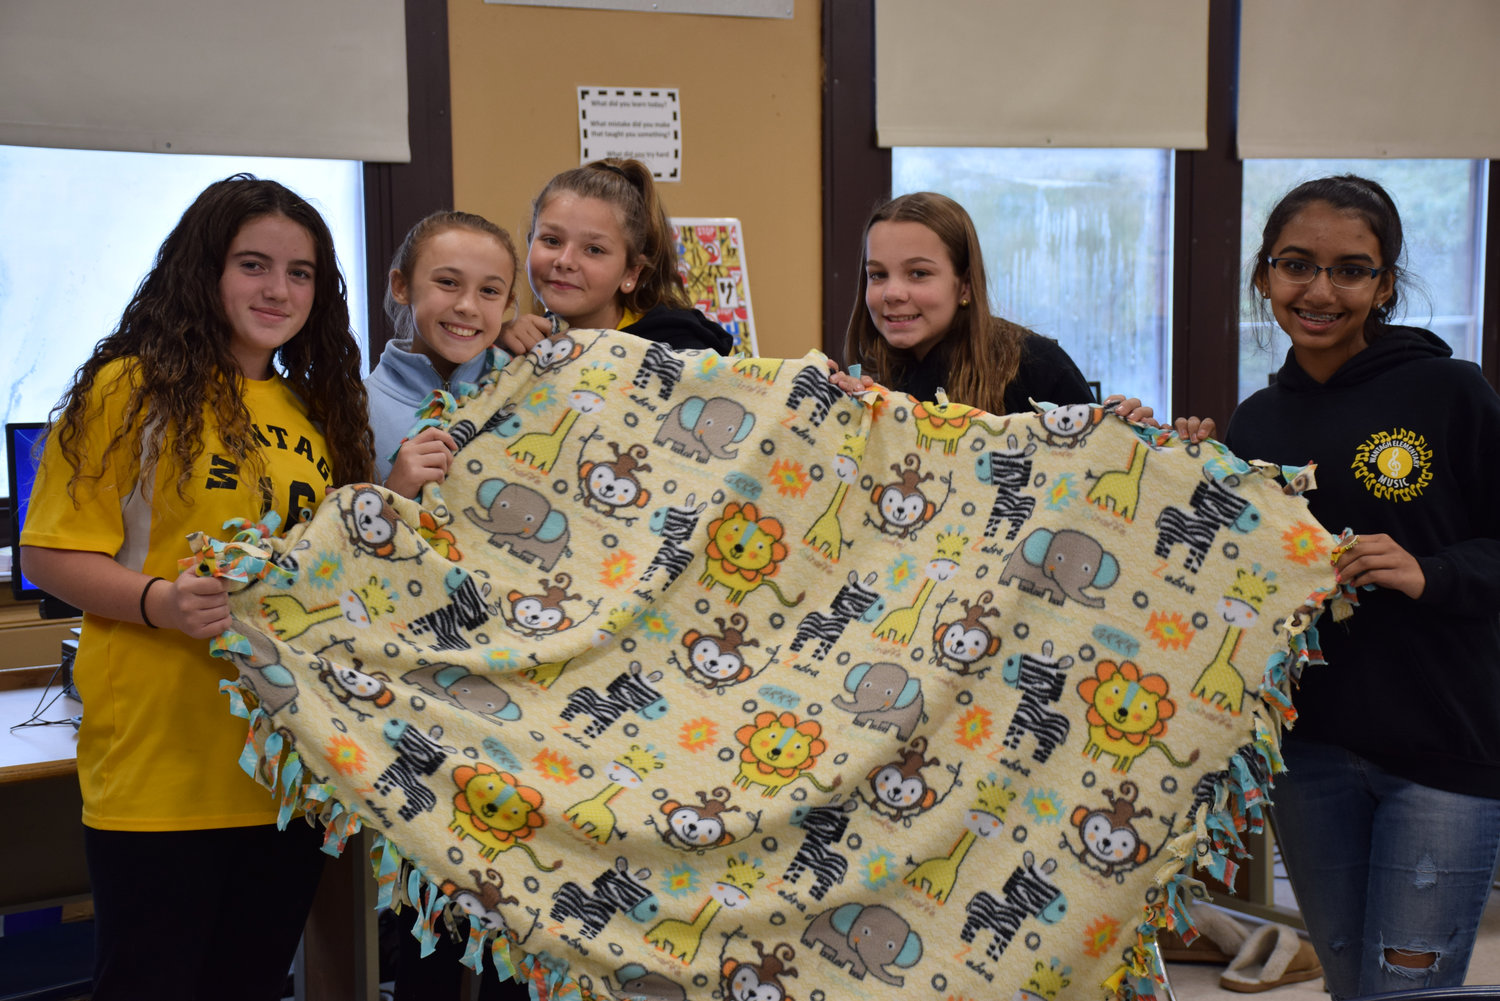 Students in Wantagh Middle School's eighth-grade business management elective made fleece blankets for the patients at Ronald McDonald House of Long Island.